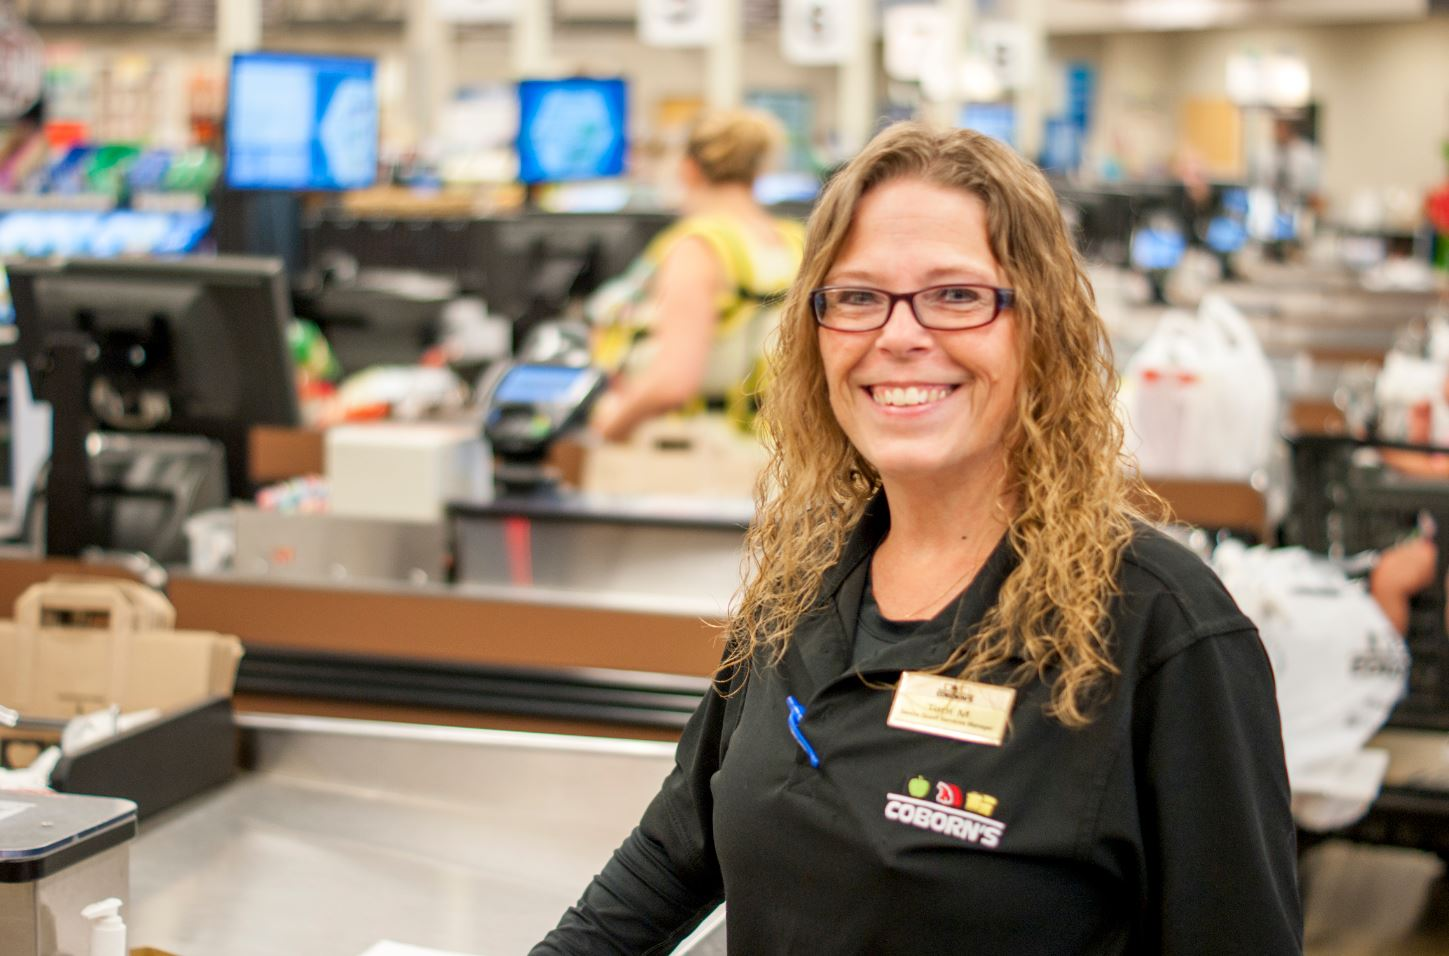 Sr Guest Services Mgr: Little Falls, MN